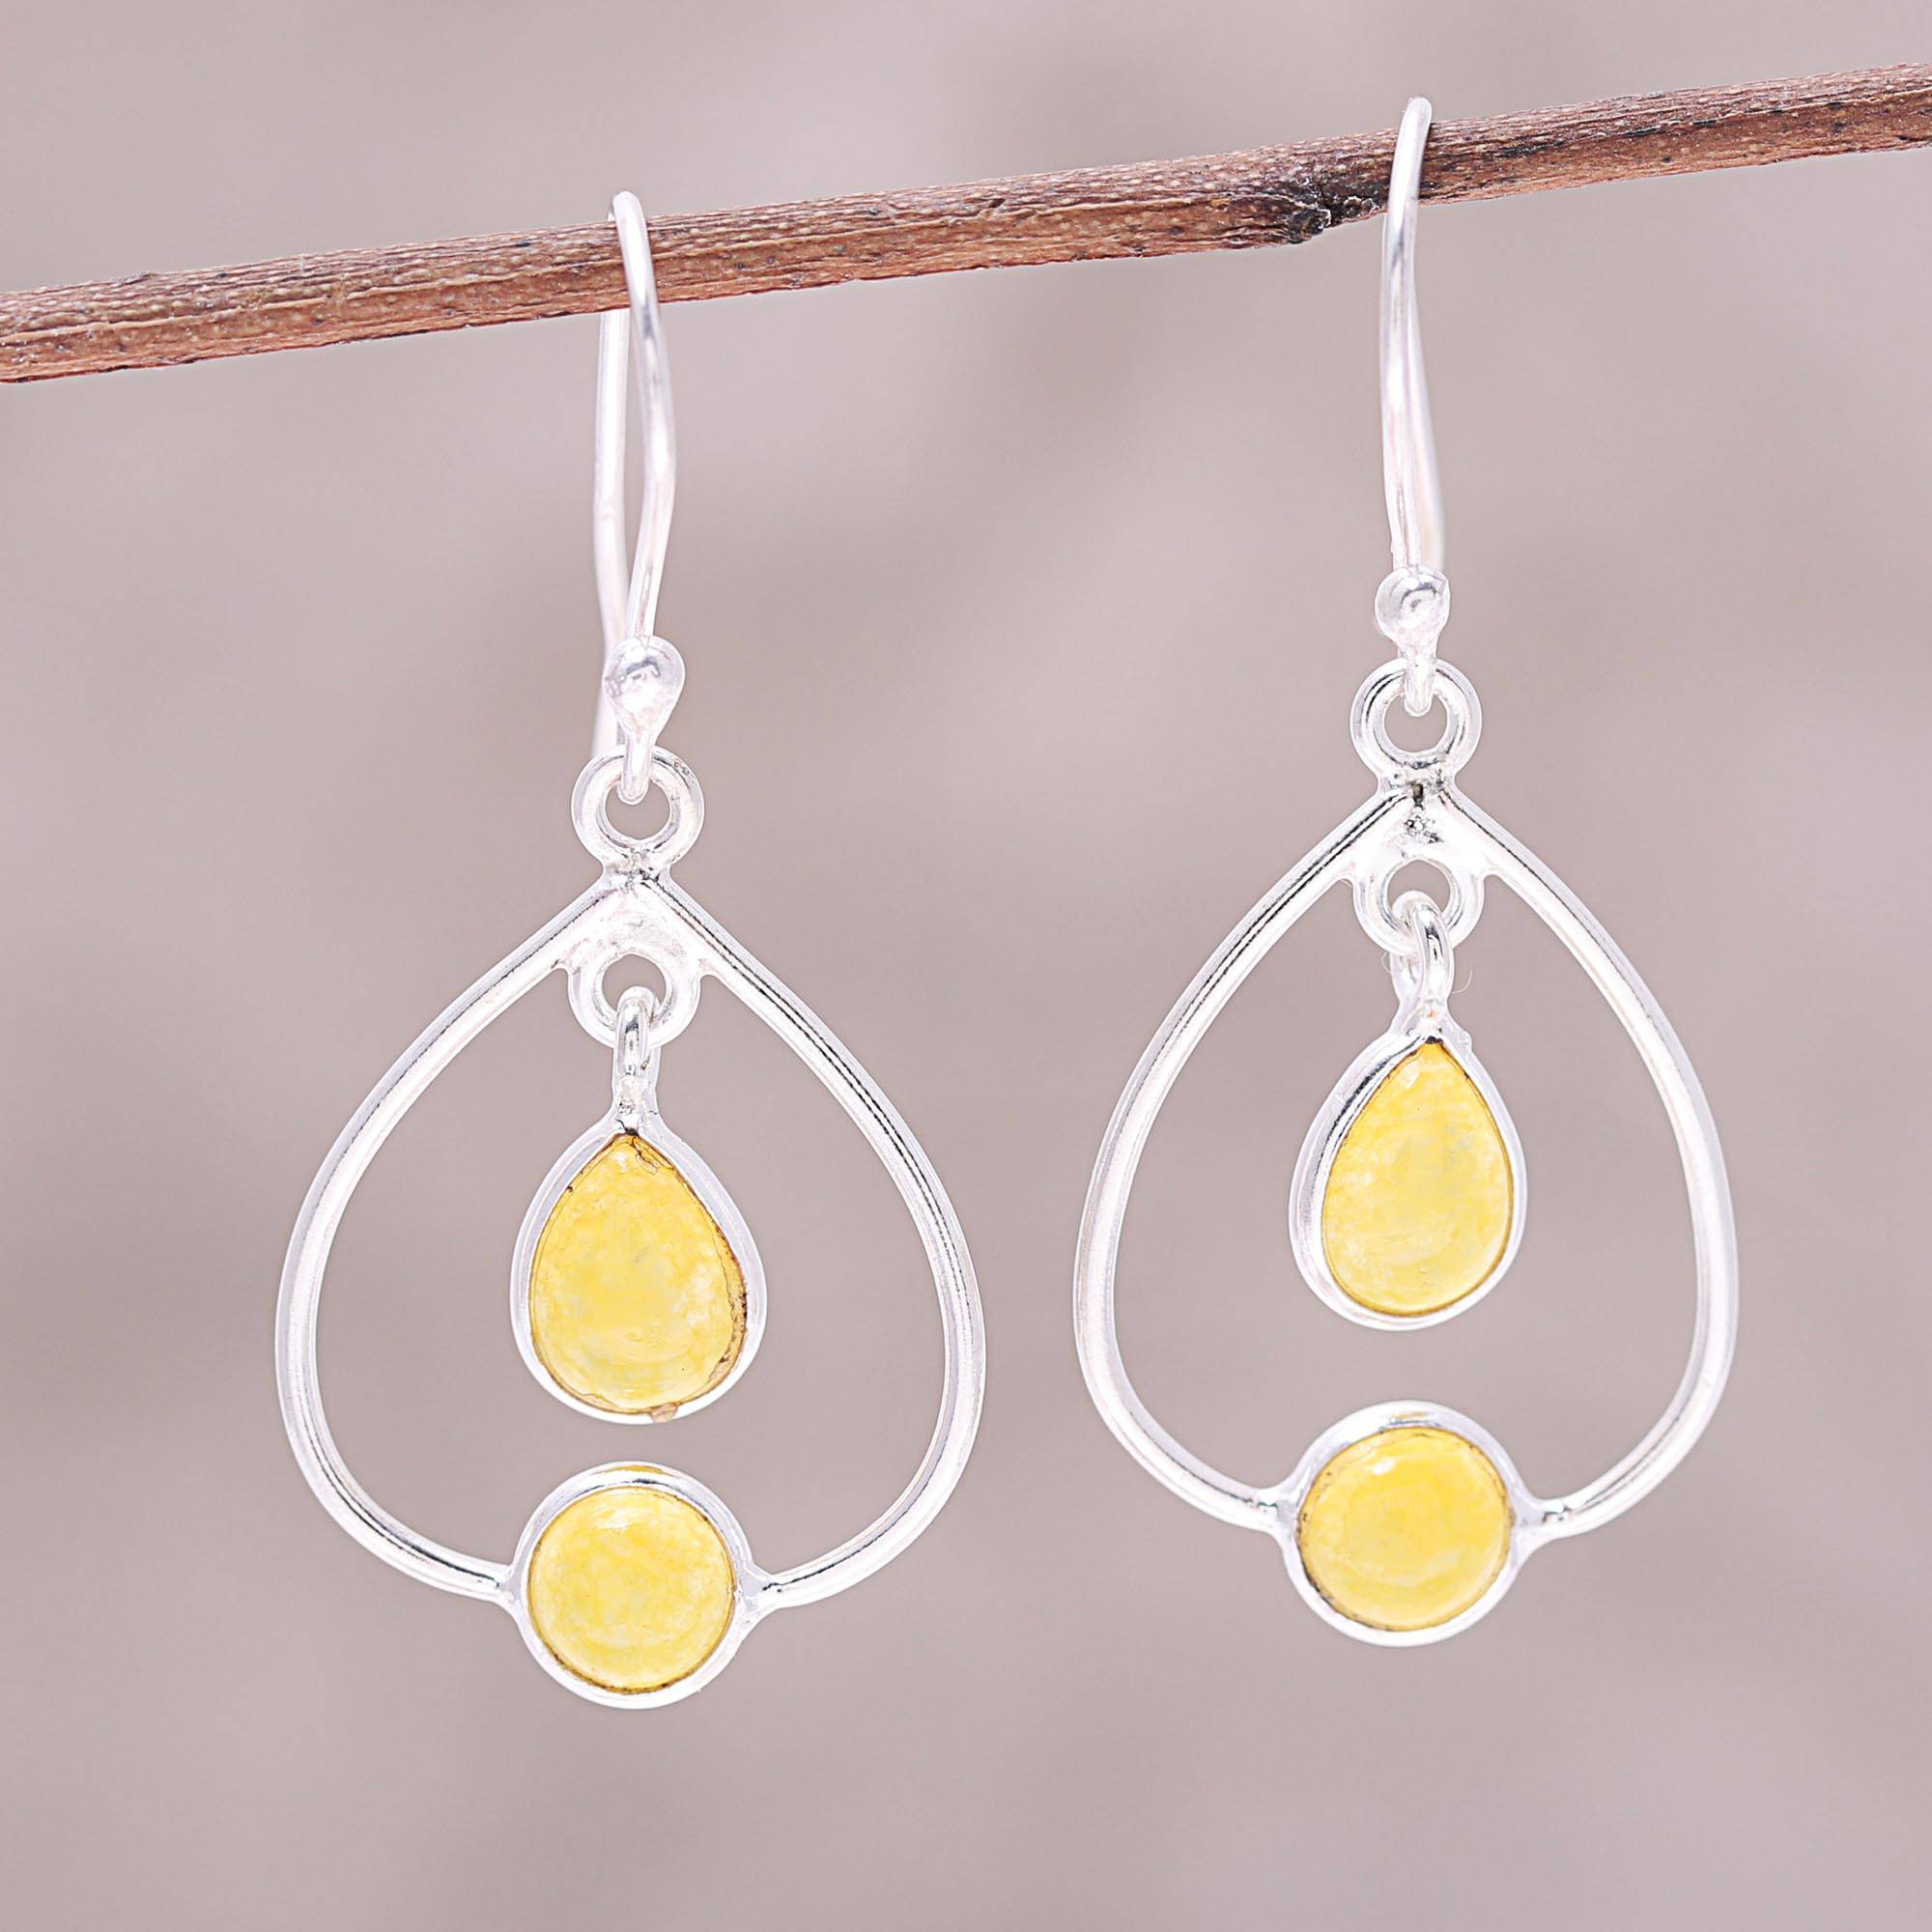 Sterling Silver And Yellow Jade Dangle Earrings From India Gleaming Glory